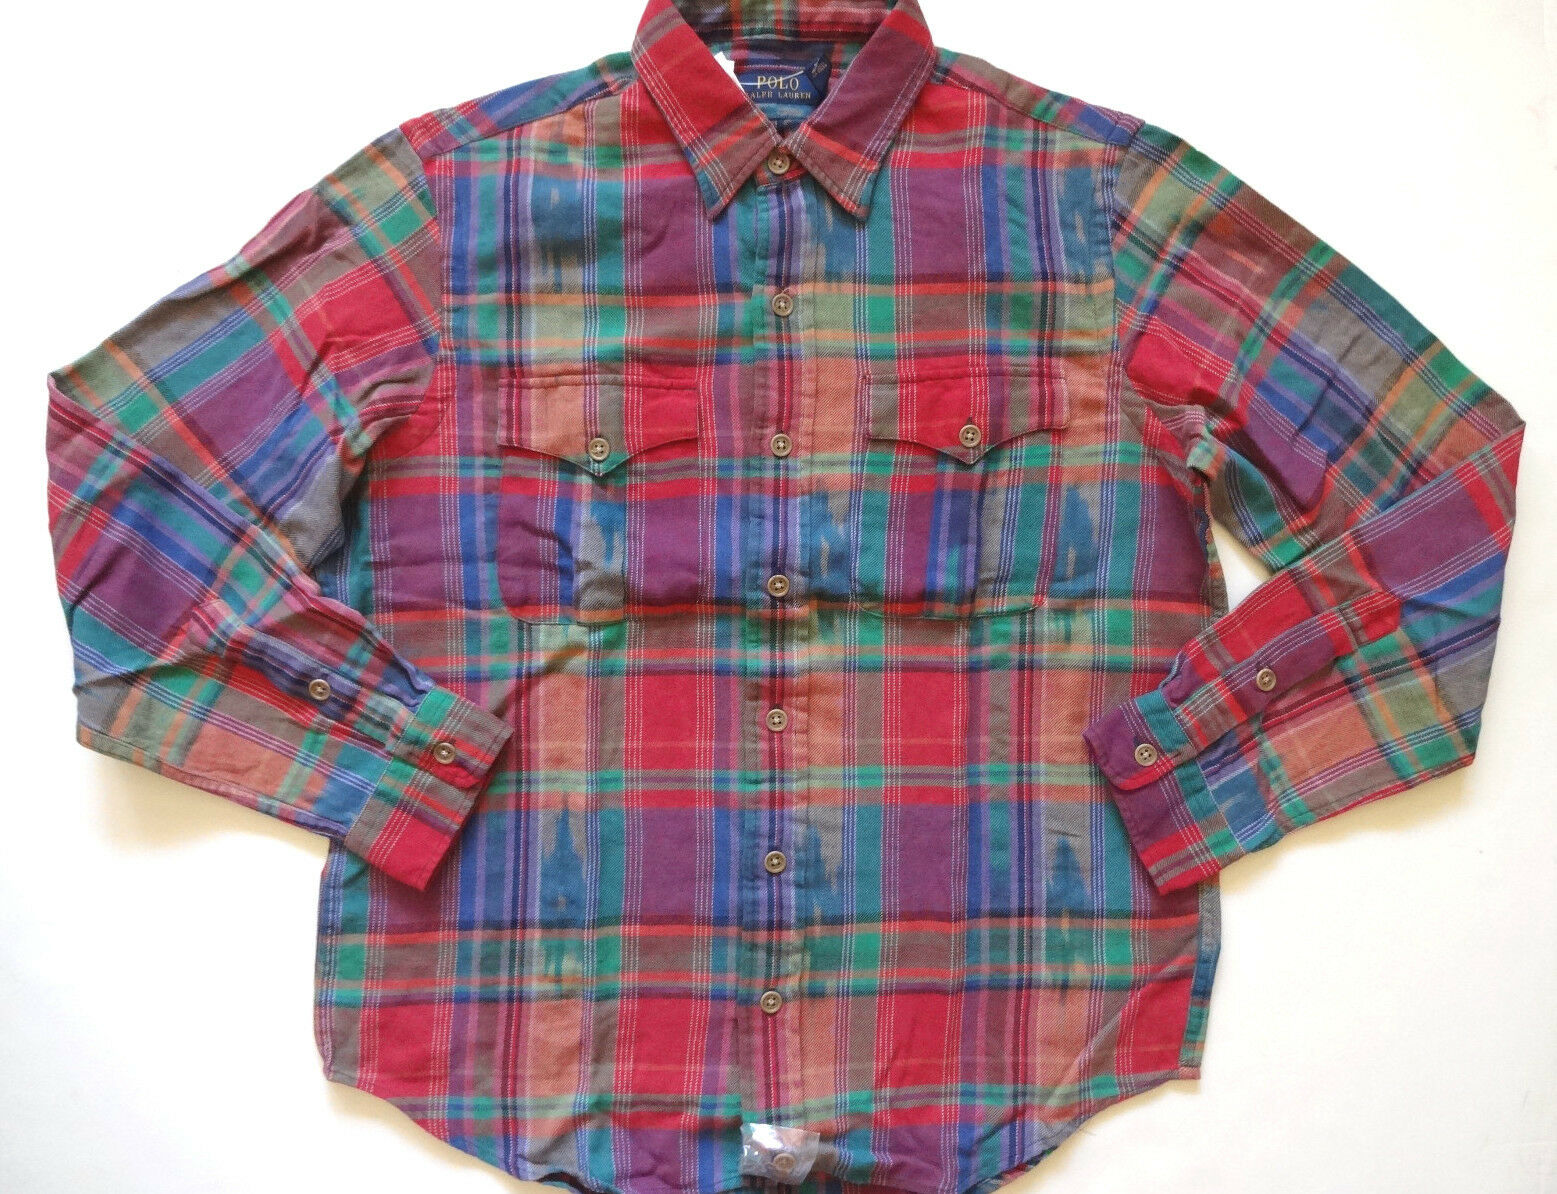 New Ralph Lauren Polo Autumn Multicolor Plaid 100% Cotton Button Up Shirt XL